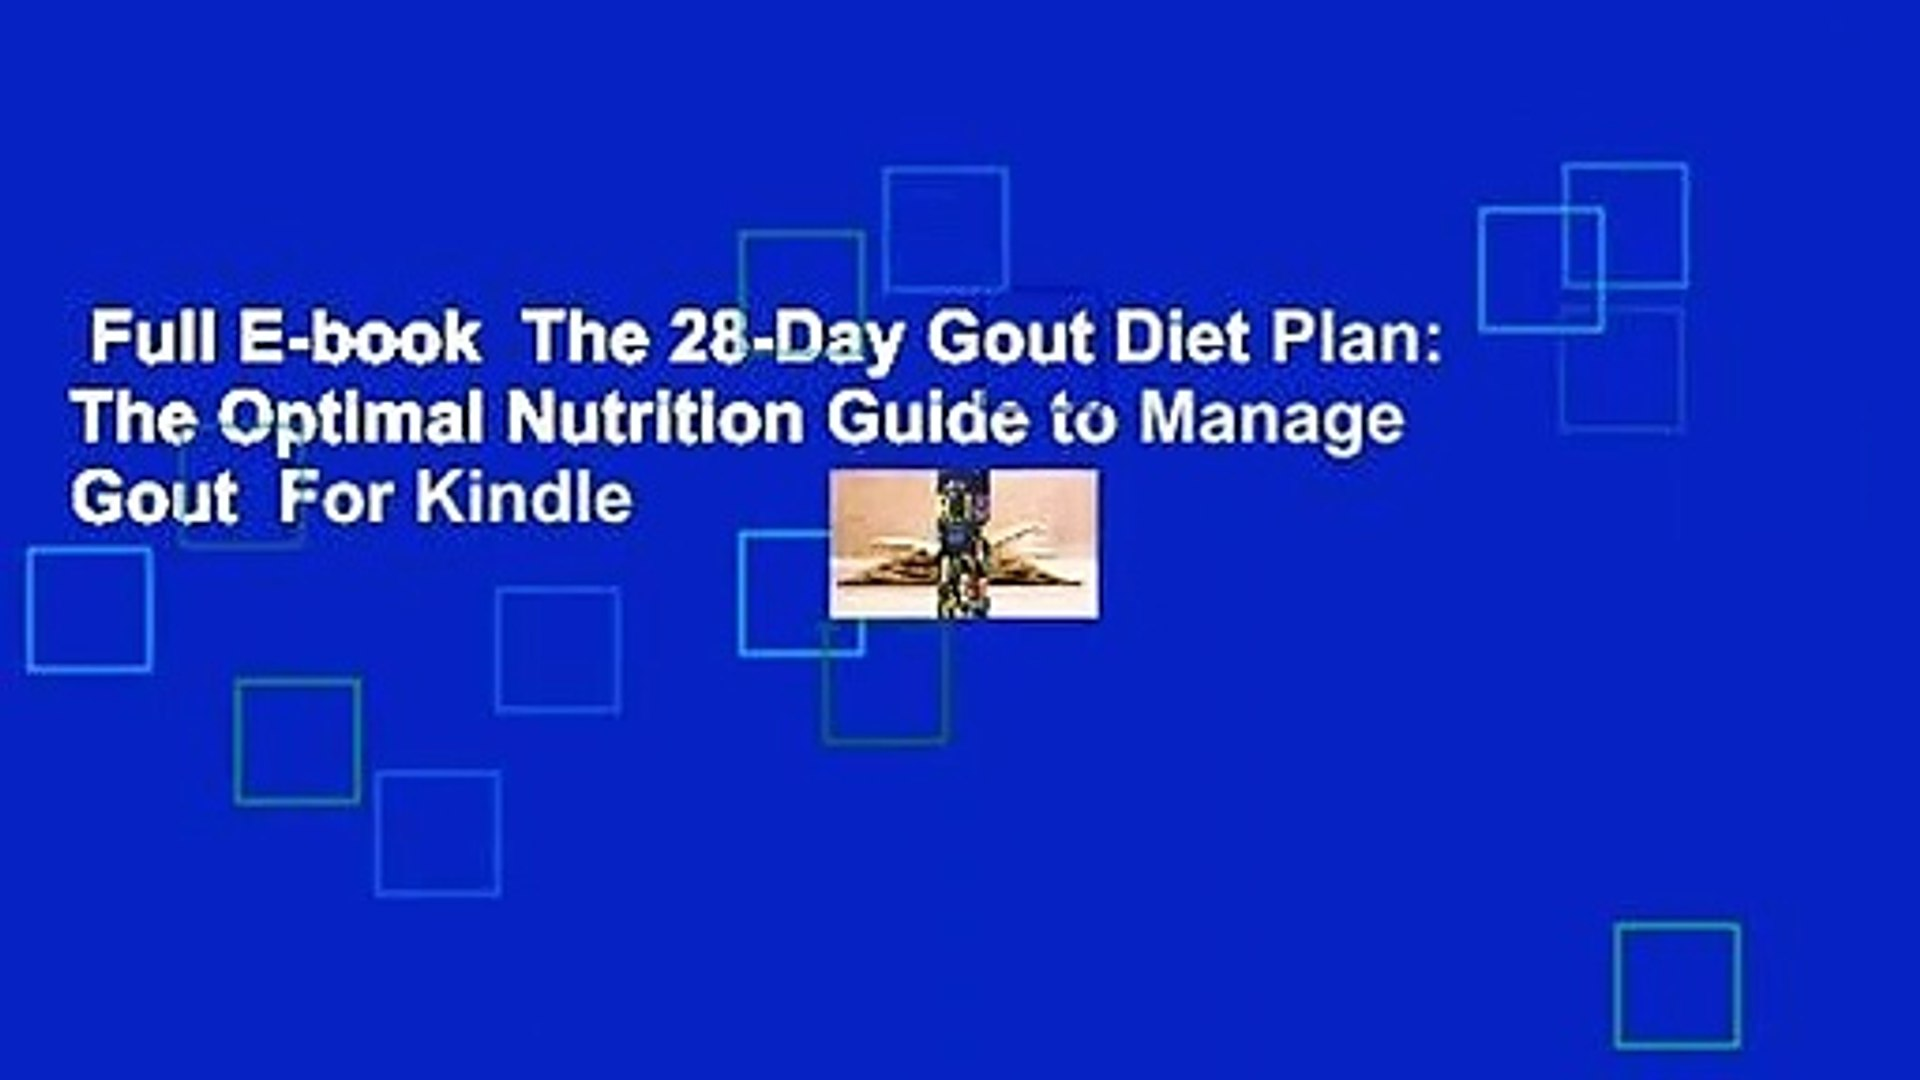 the 28-day gout diet plan